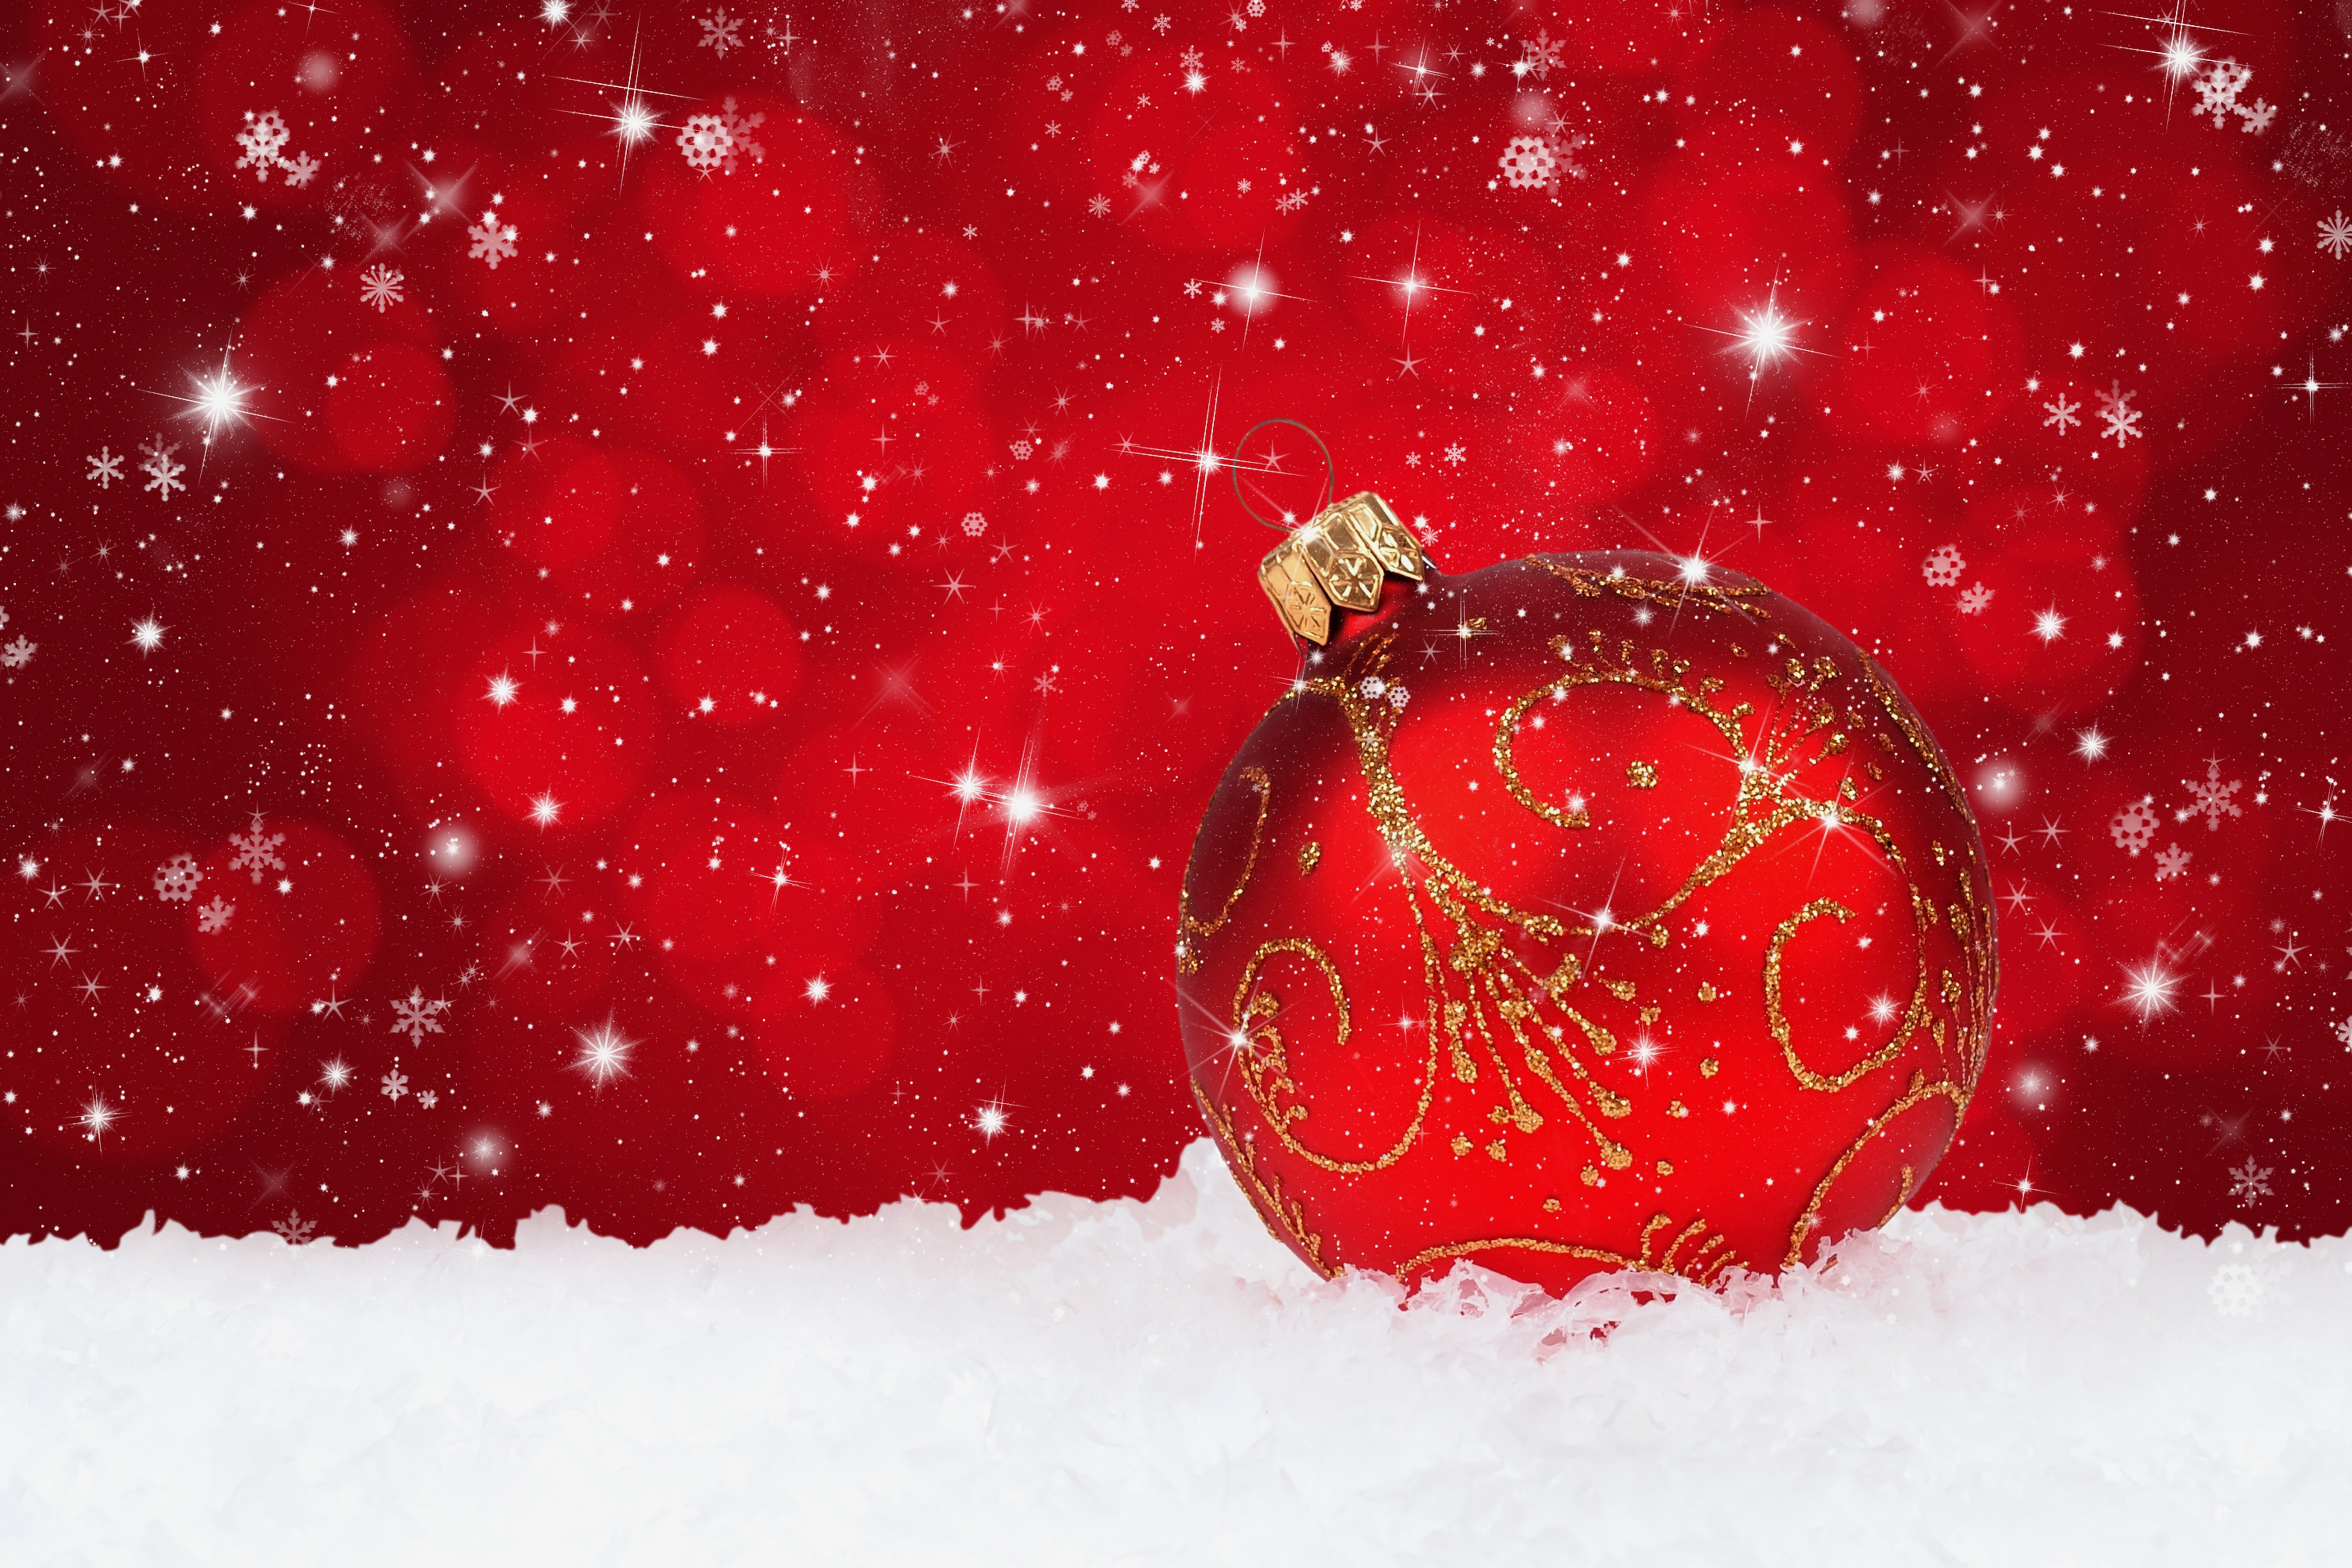 Snowy Christmas Backgrounds Png - Red Christmas Snowy Background with Christmas Ball | Gallery ...